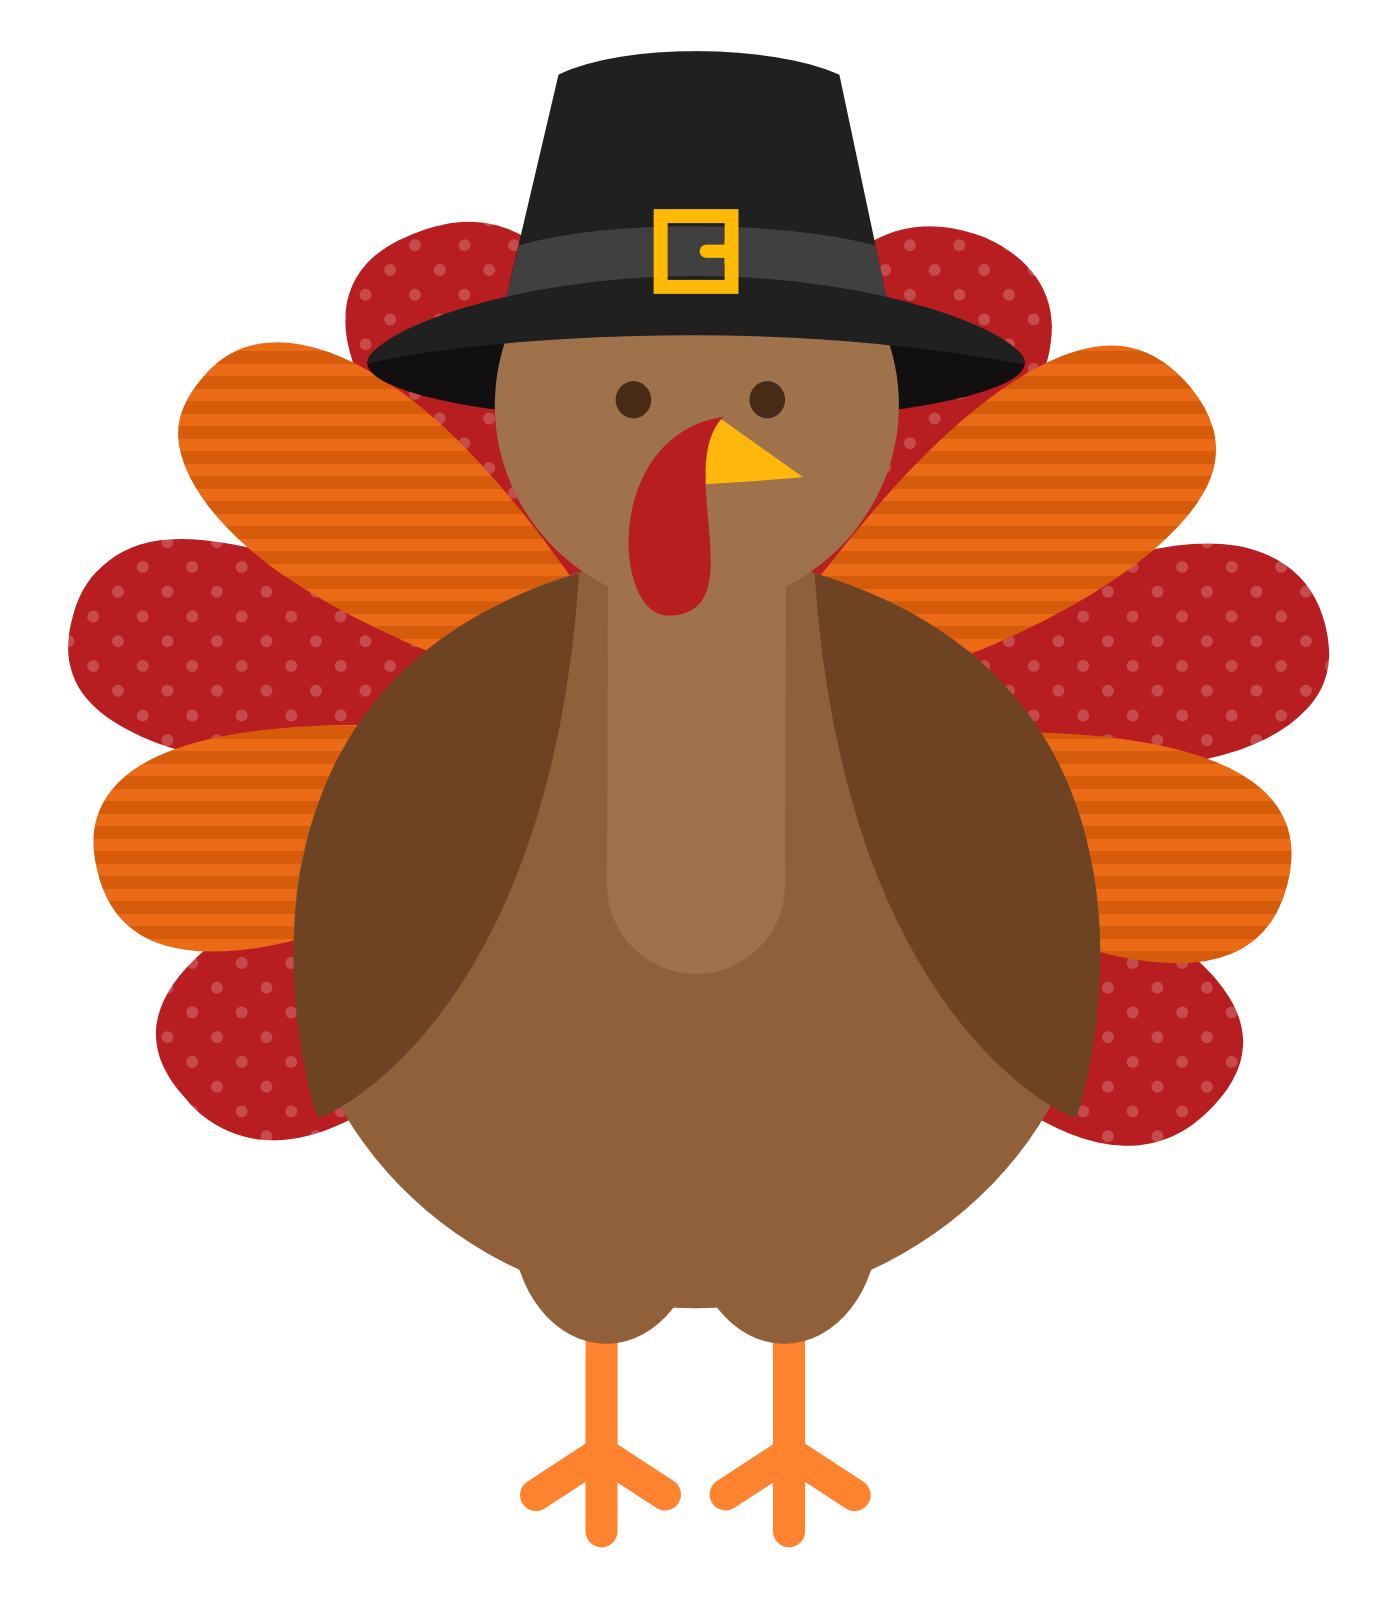 Turkey thanksgiving png free. Clocks clipart time management